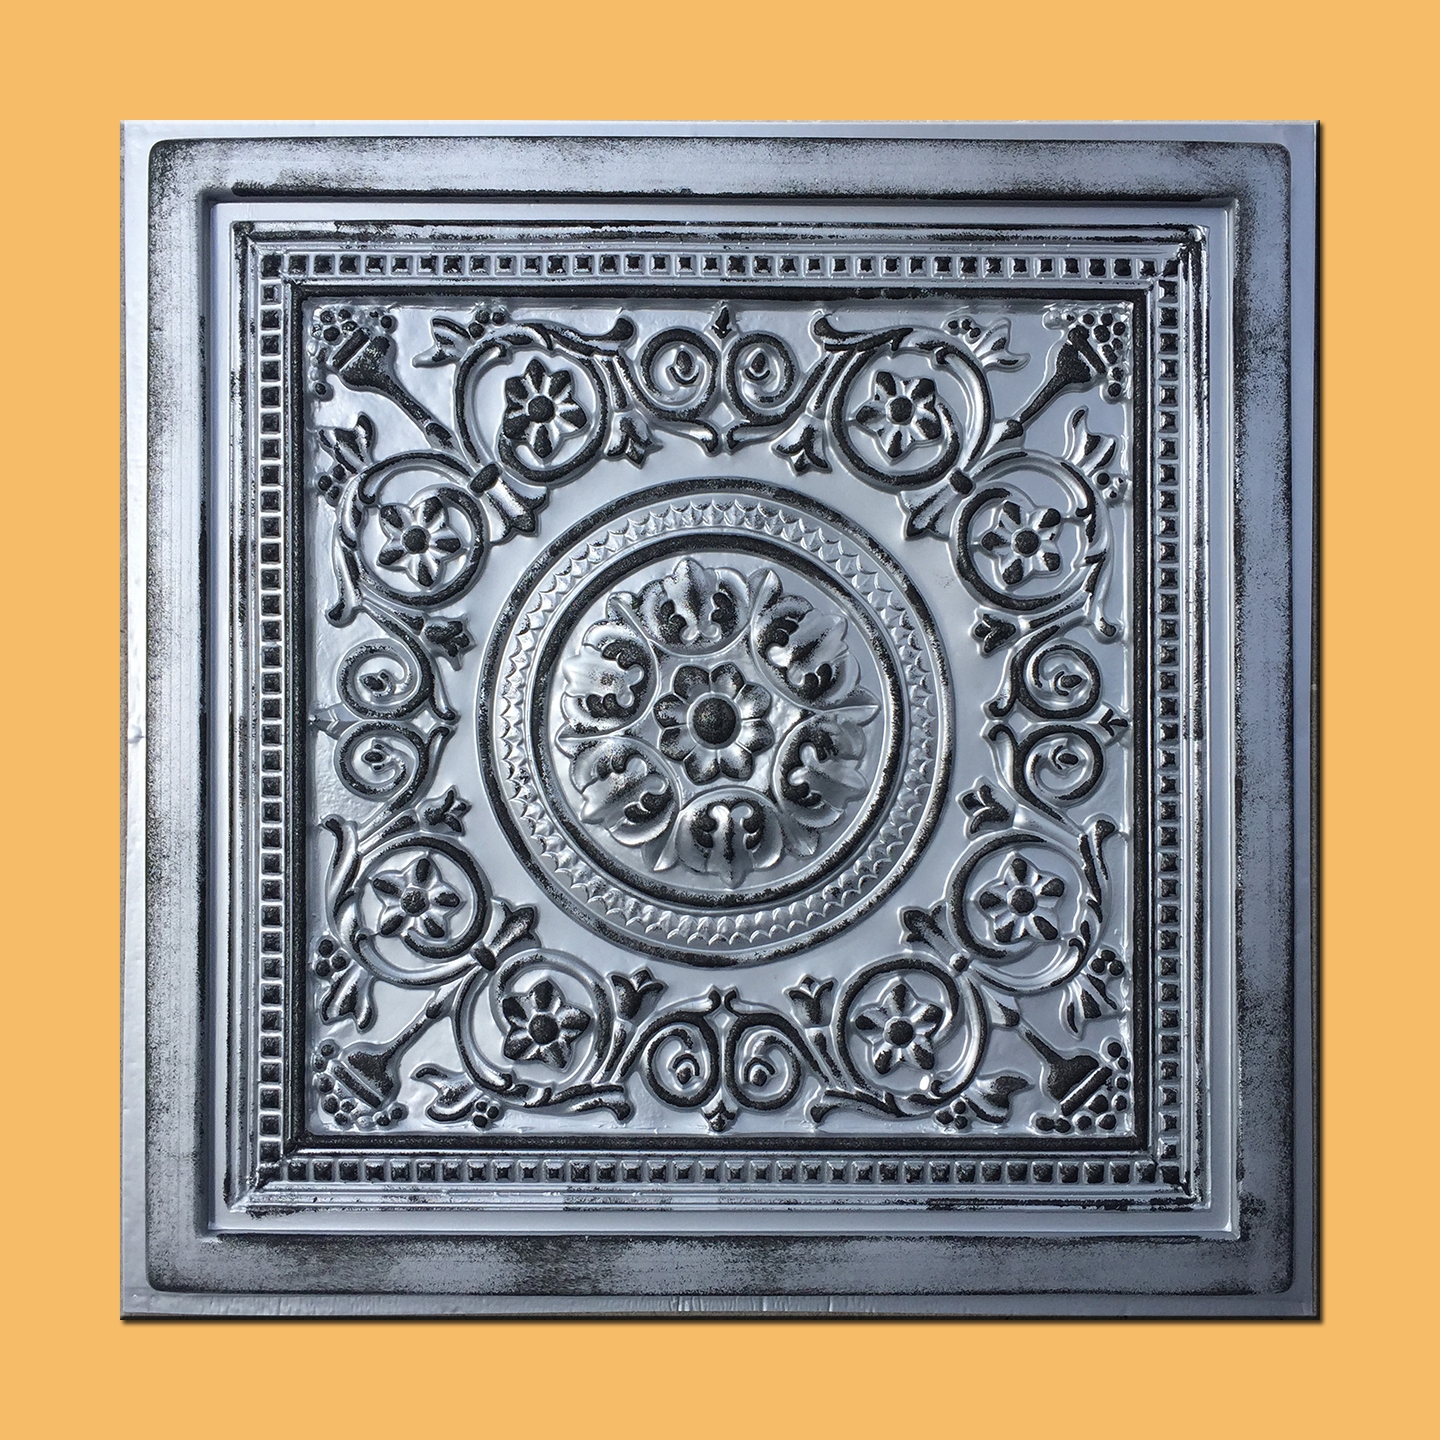 24x24 majesty rustic silver pvc 20mil ceiling tiles best seller 24x24 majesty rustic silver pvc 20mil ceiling tiles best seller pvc ceiling tile dailygadgetfo Gallery